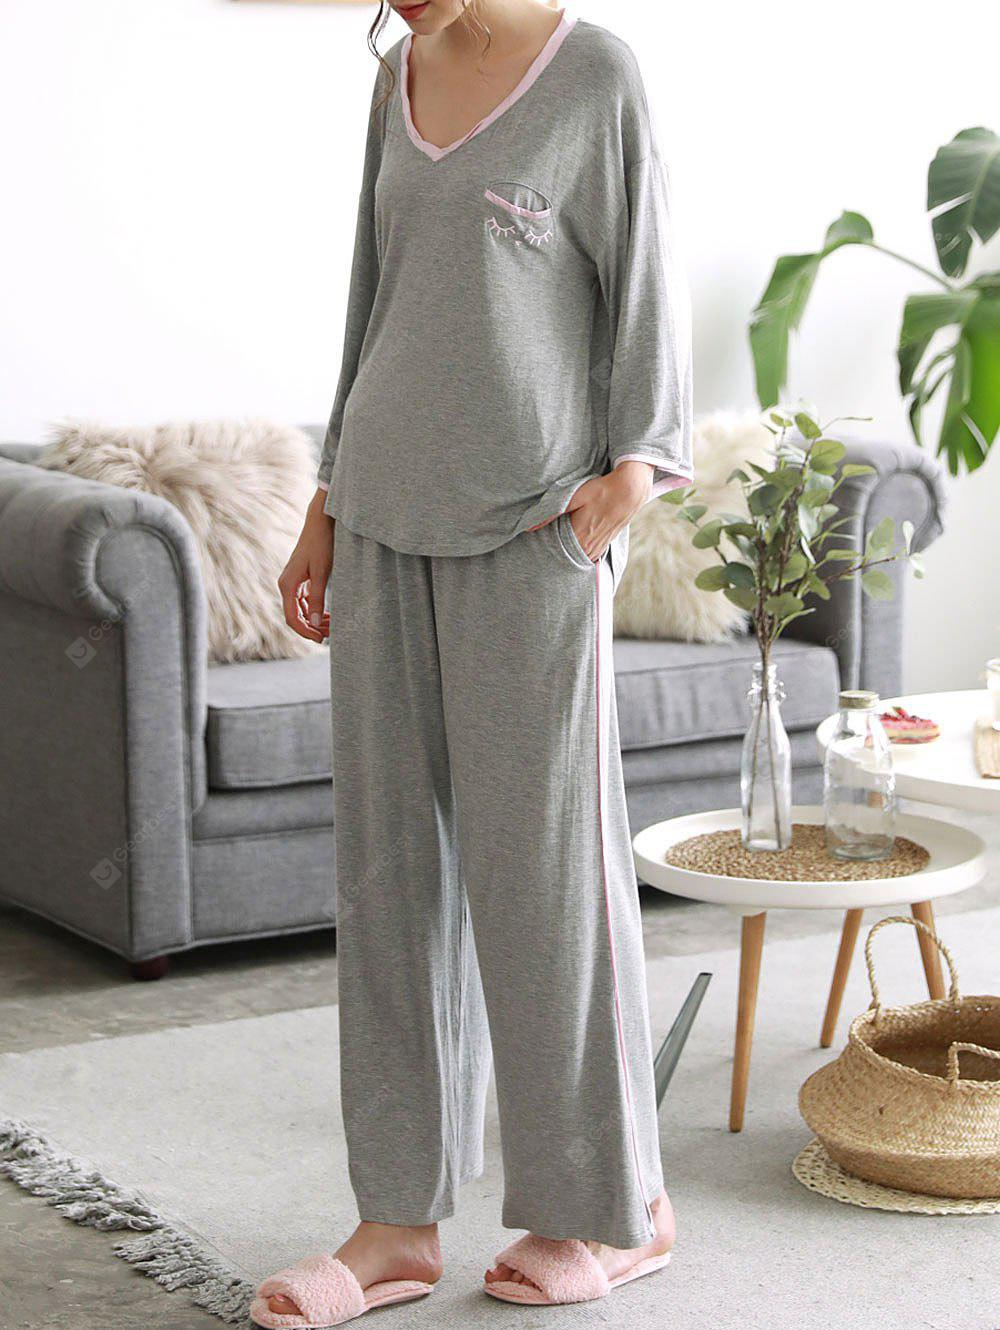 GRAY M Cosy Loungewear T-shirt with Pants